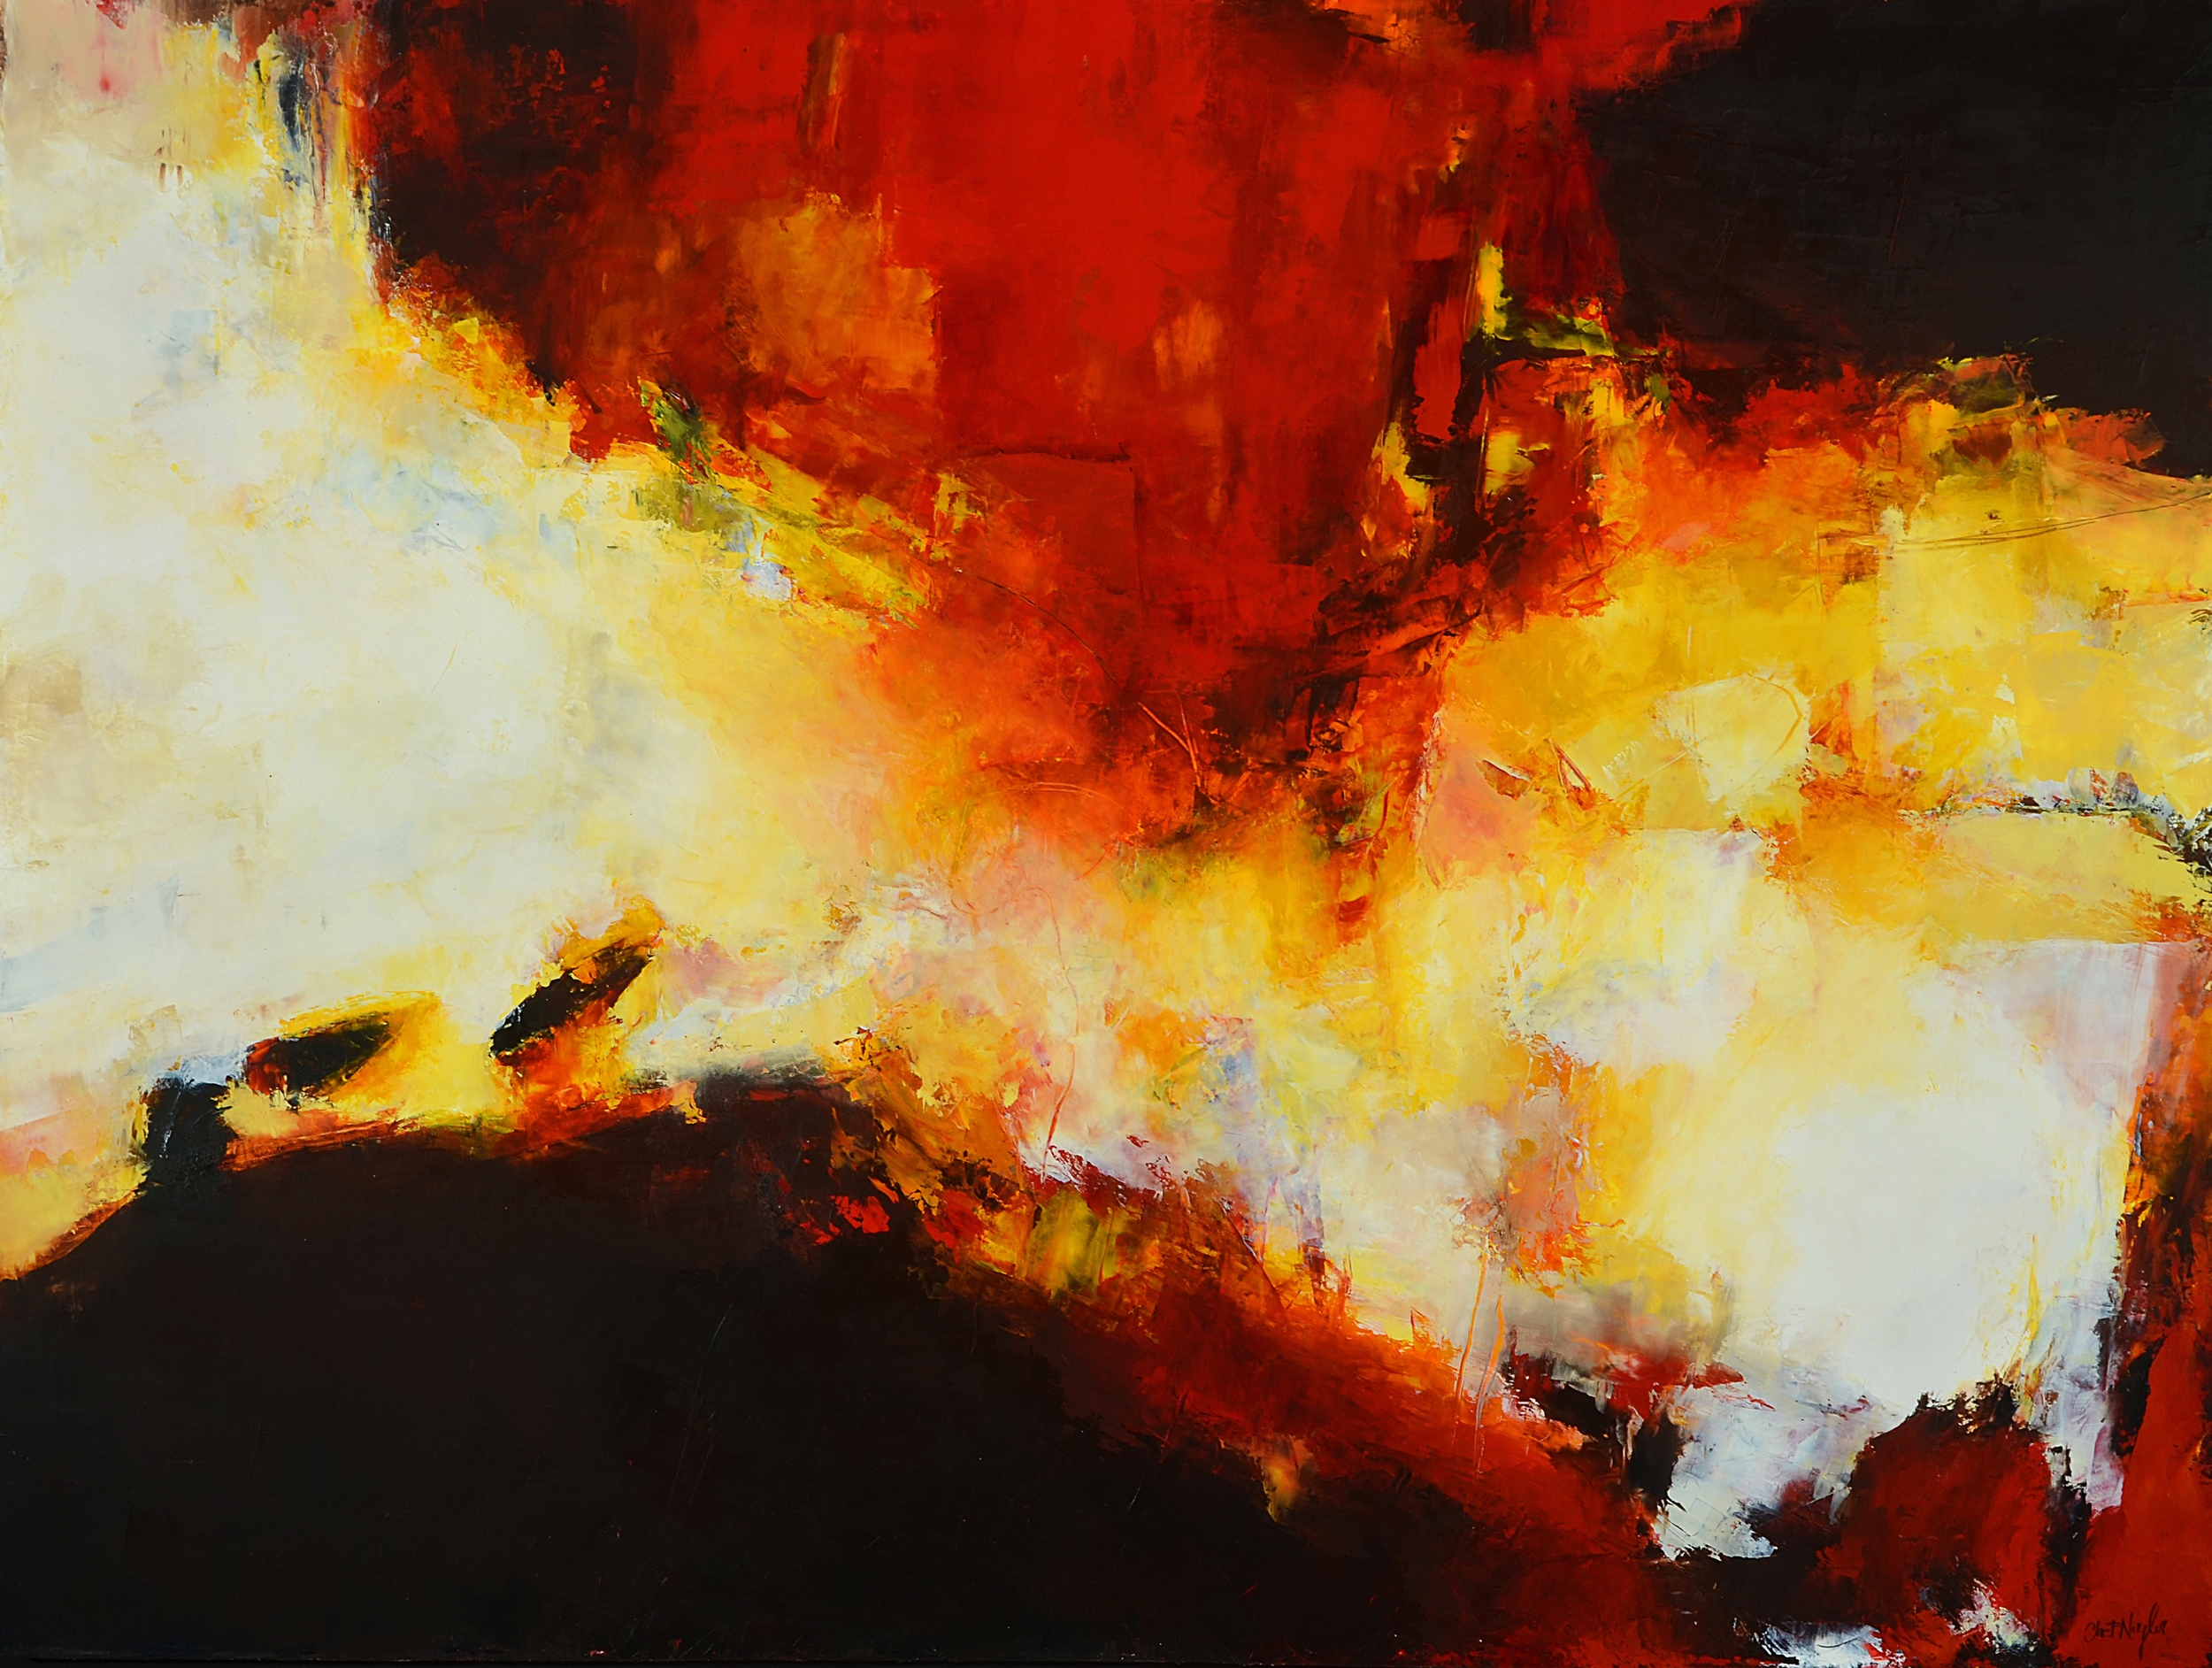 Autumn Fire Oil and cold wax on birch panel 48 x 36 inches